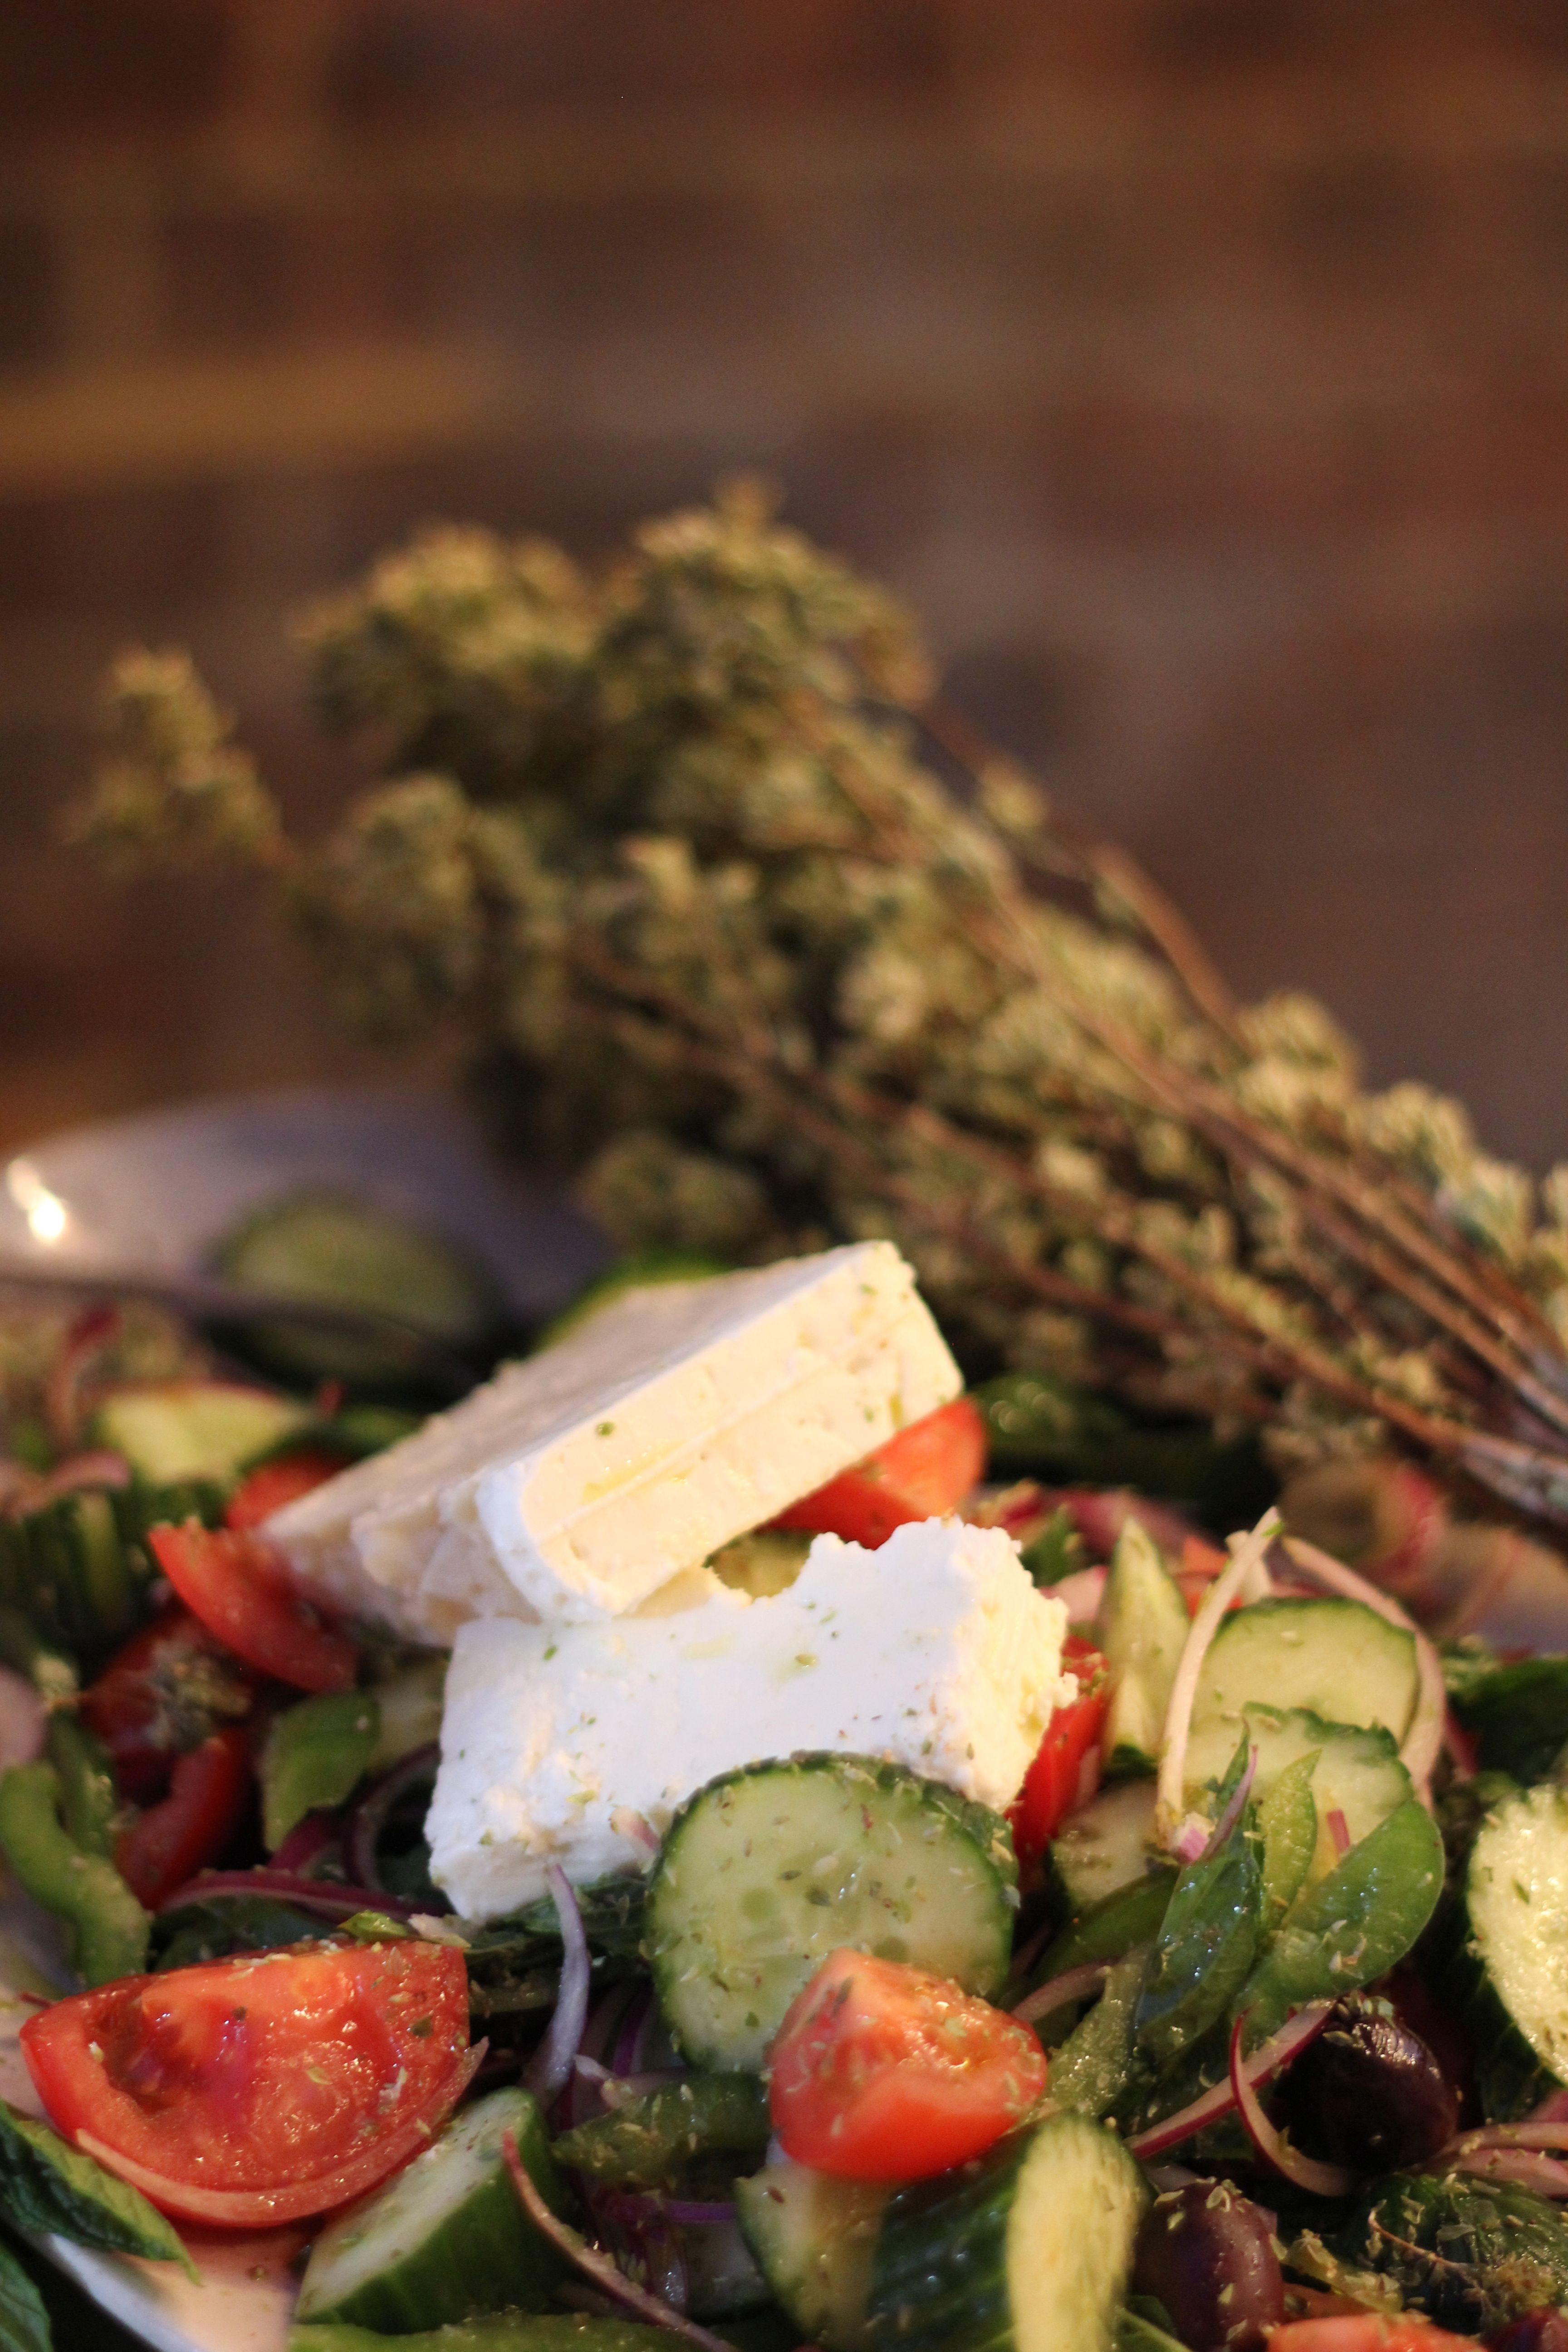 Jamie's Greek salad